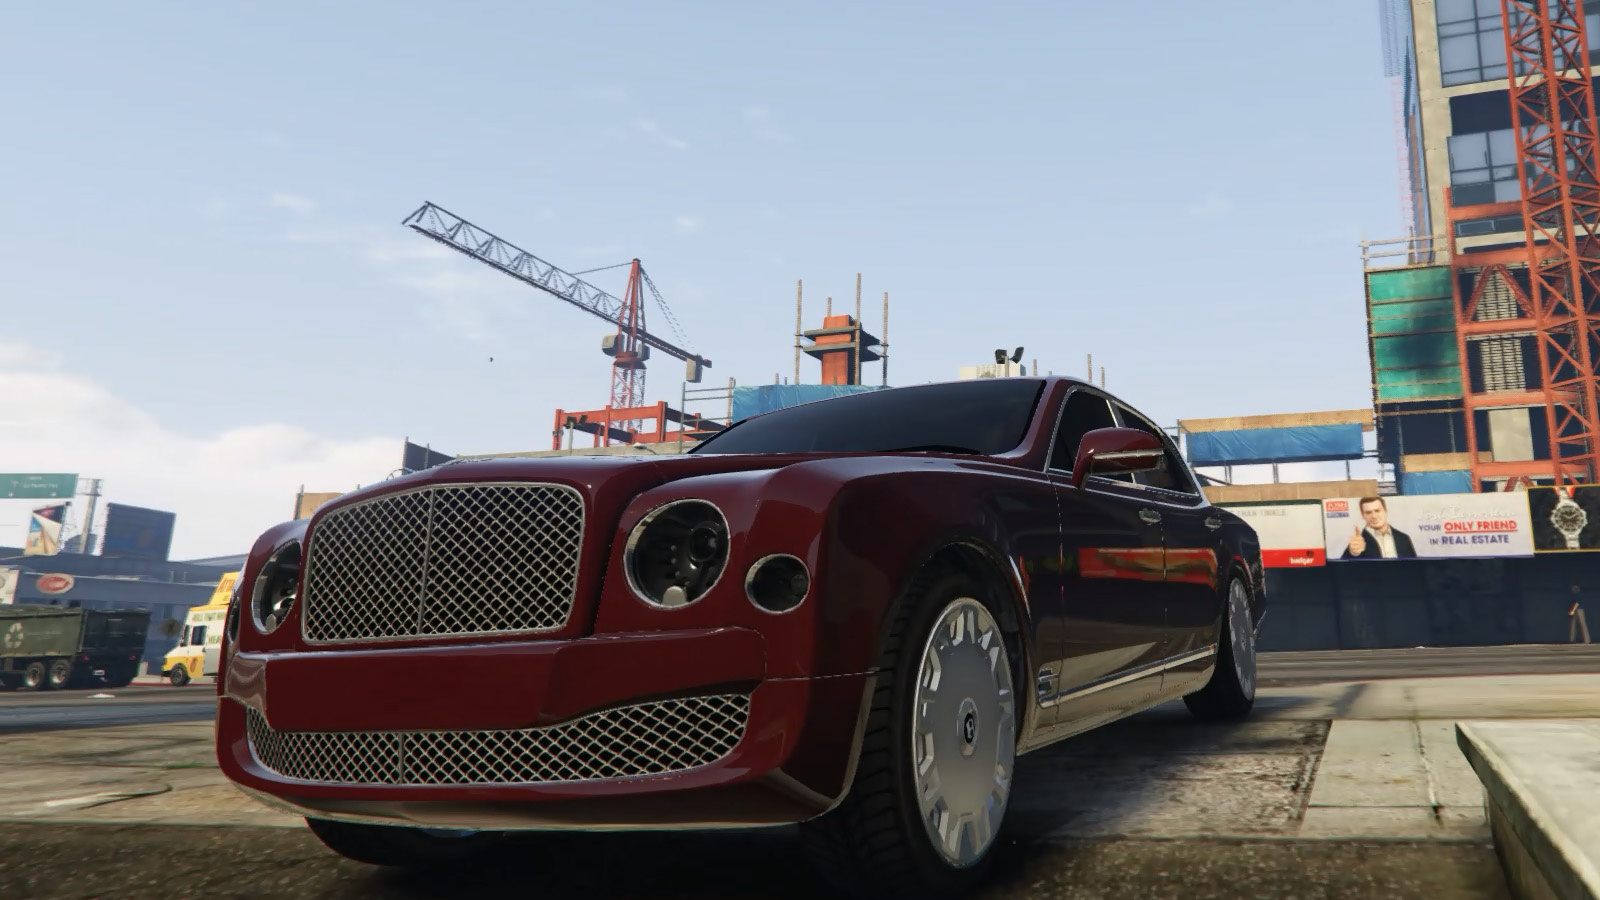 Bentley mulsanne 2010 admiral edition gta5 mods fe8d88 13052015 816 vanachro Image collections